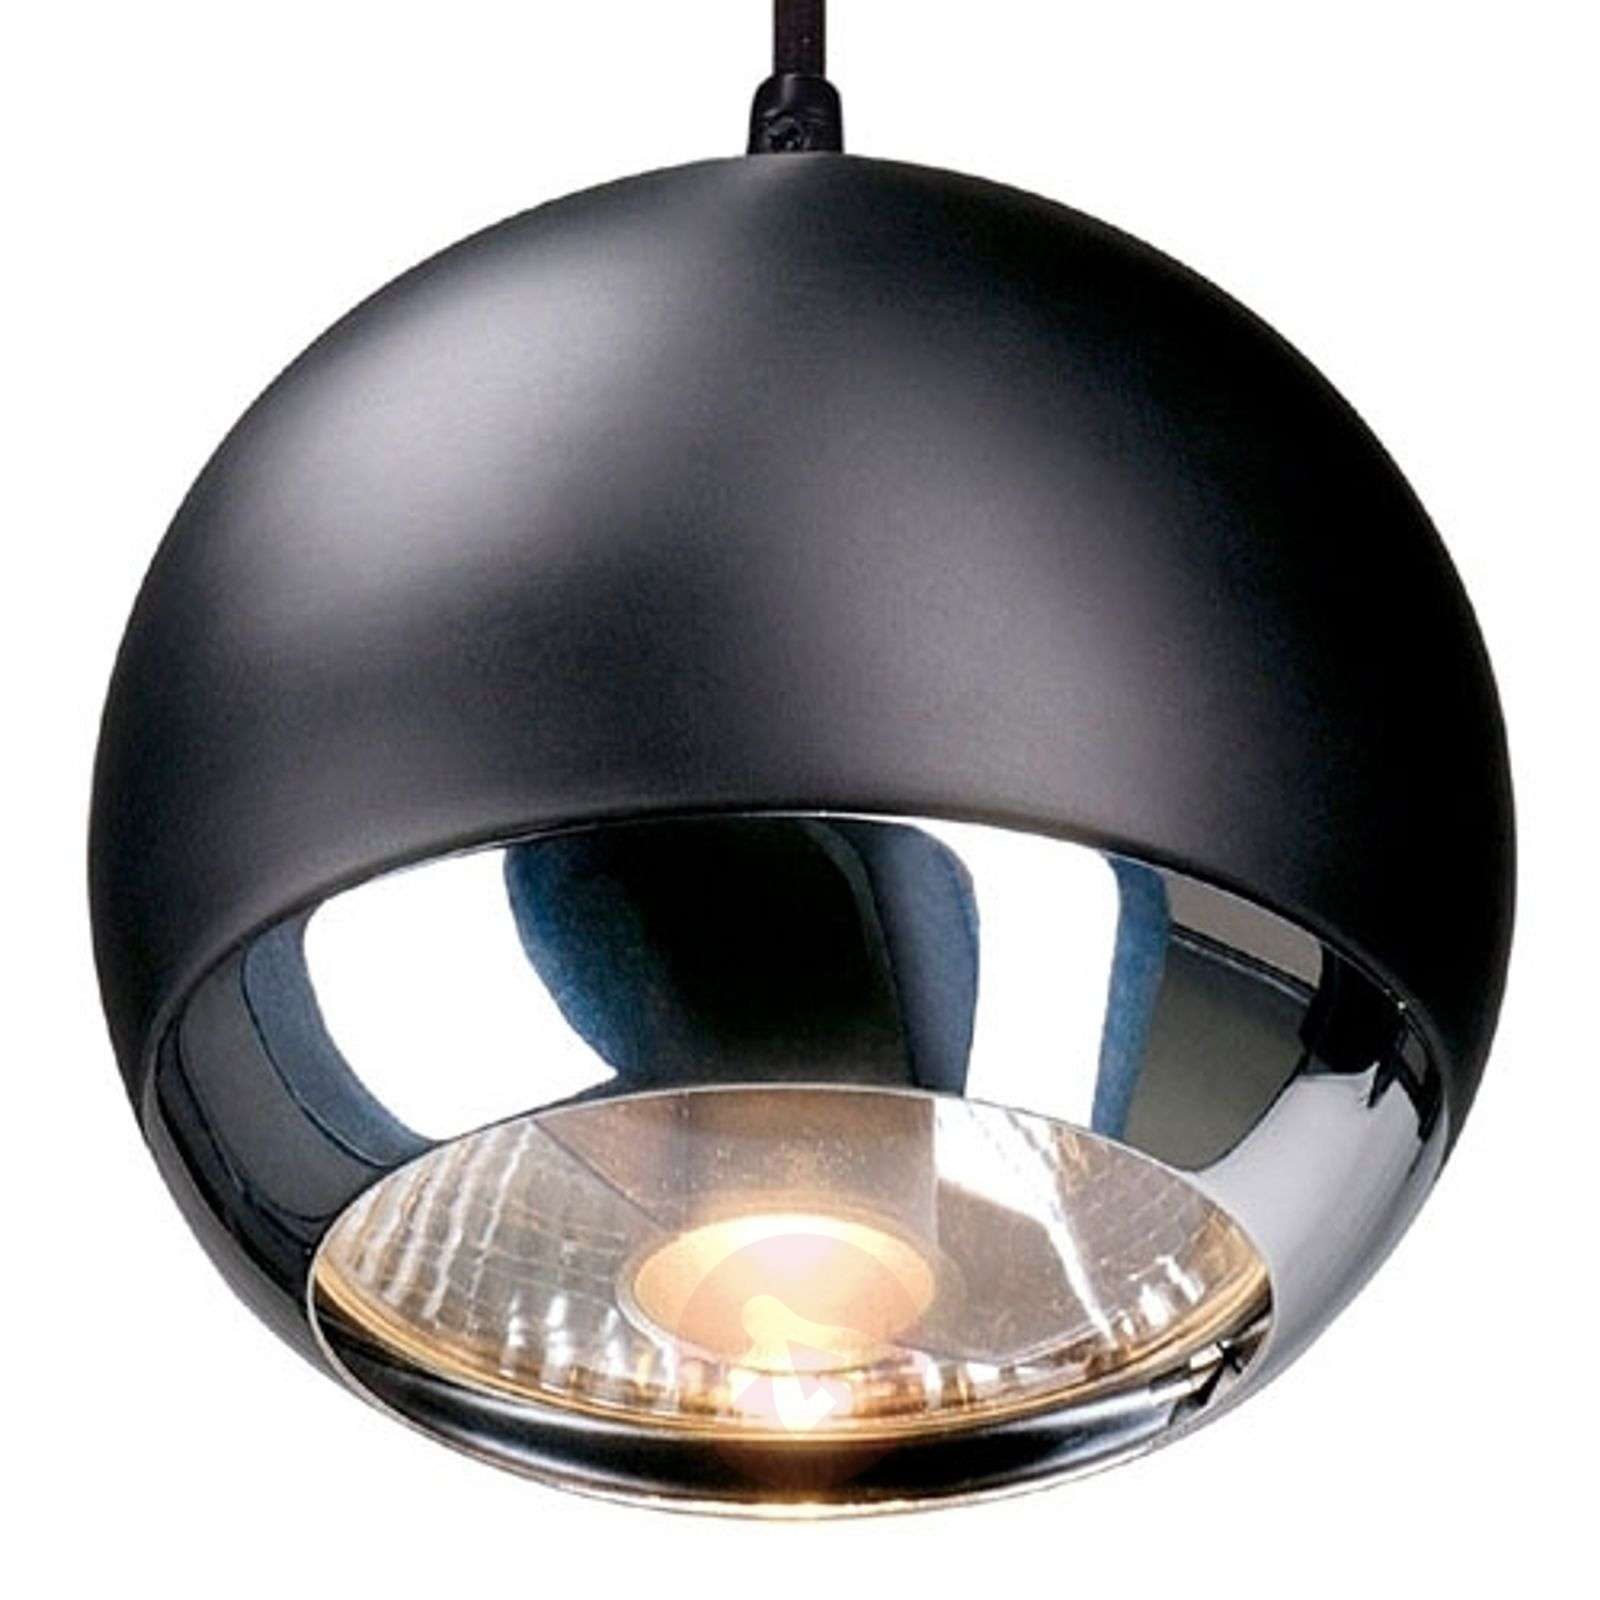 Lampa wisząca Light Eye do Easytec II do szyny HV